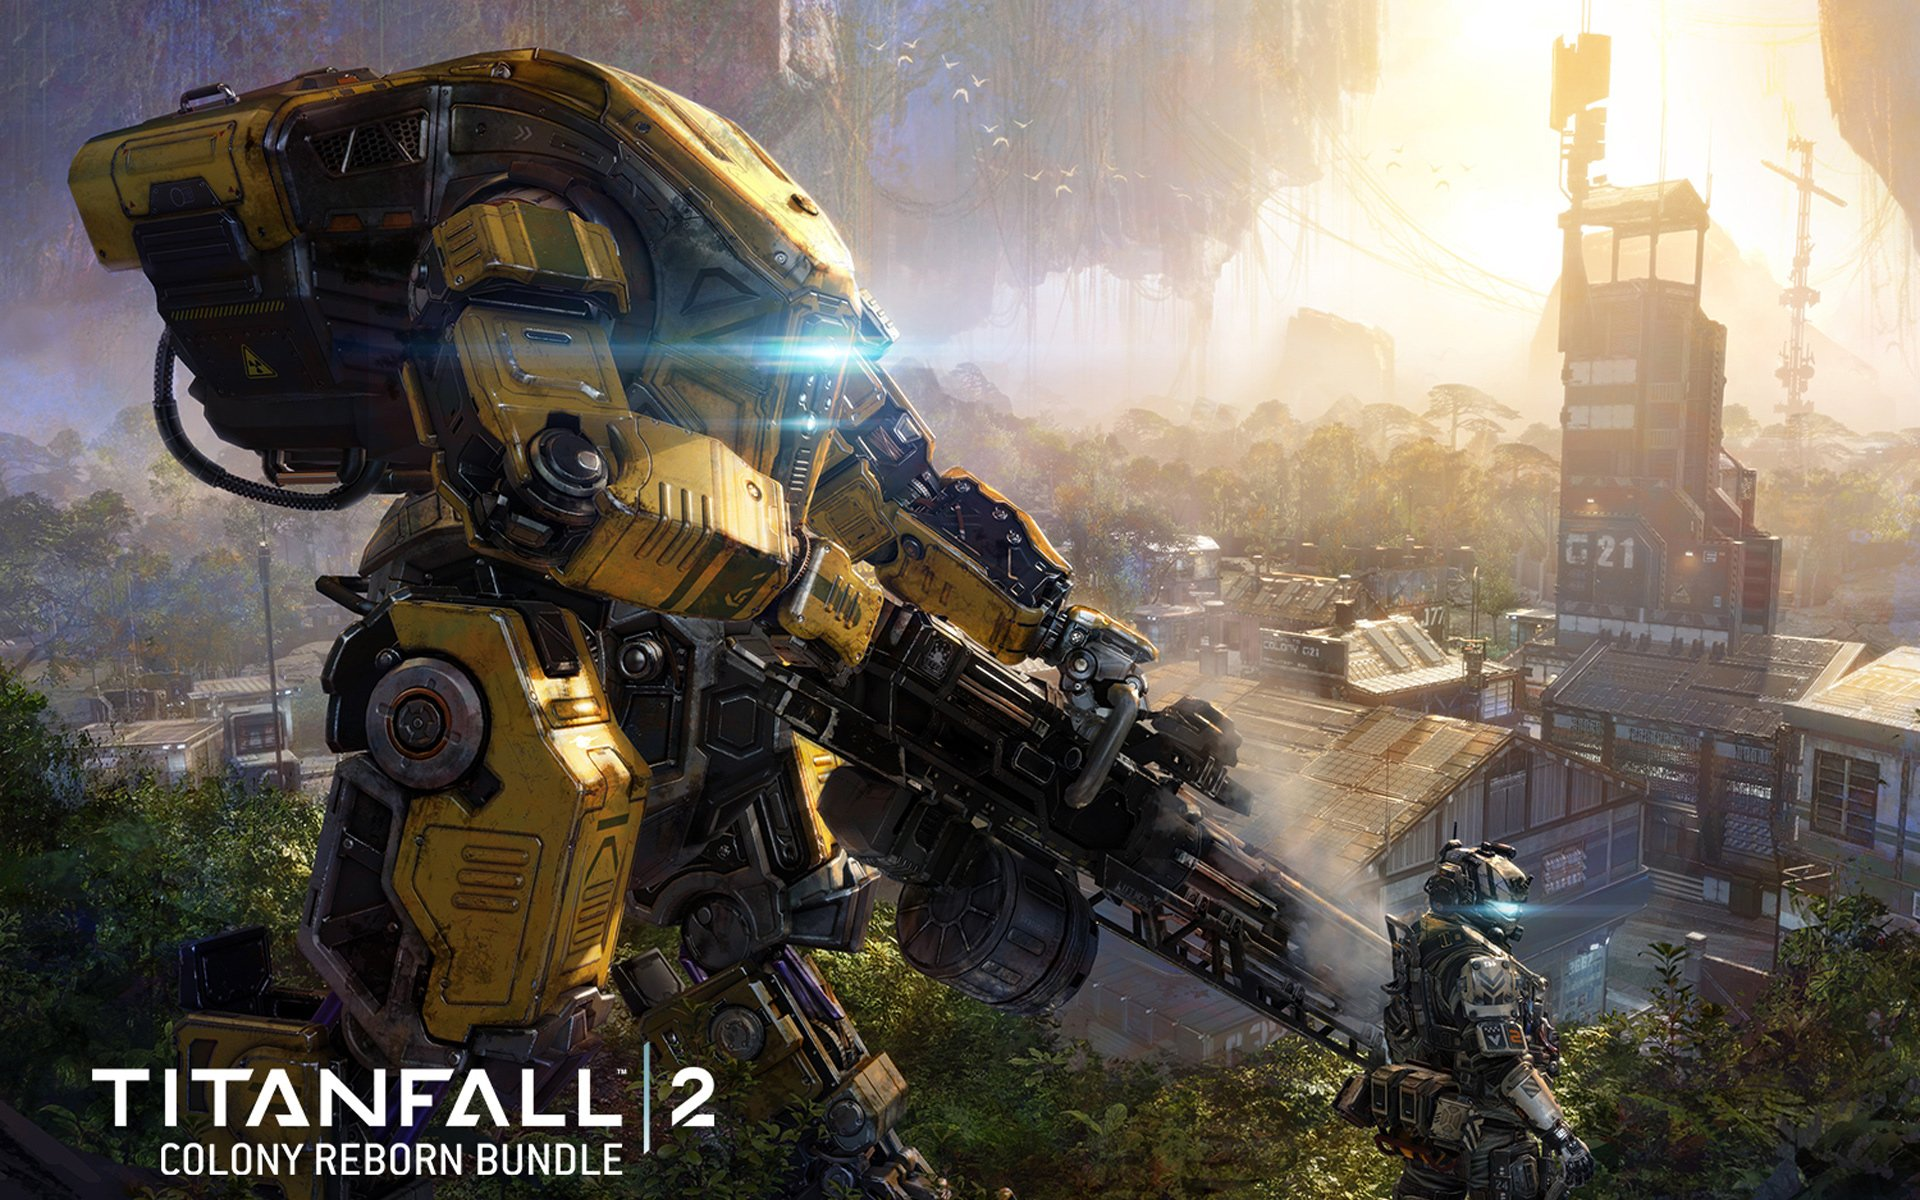 126 titanfall hd wallpapers | background images - wallpaper abyss